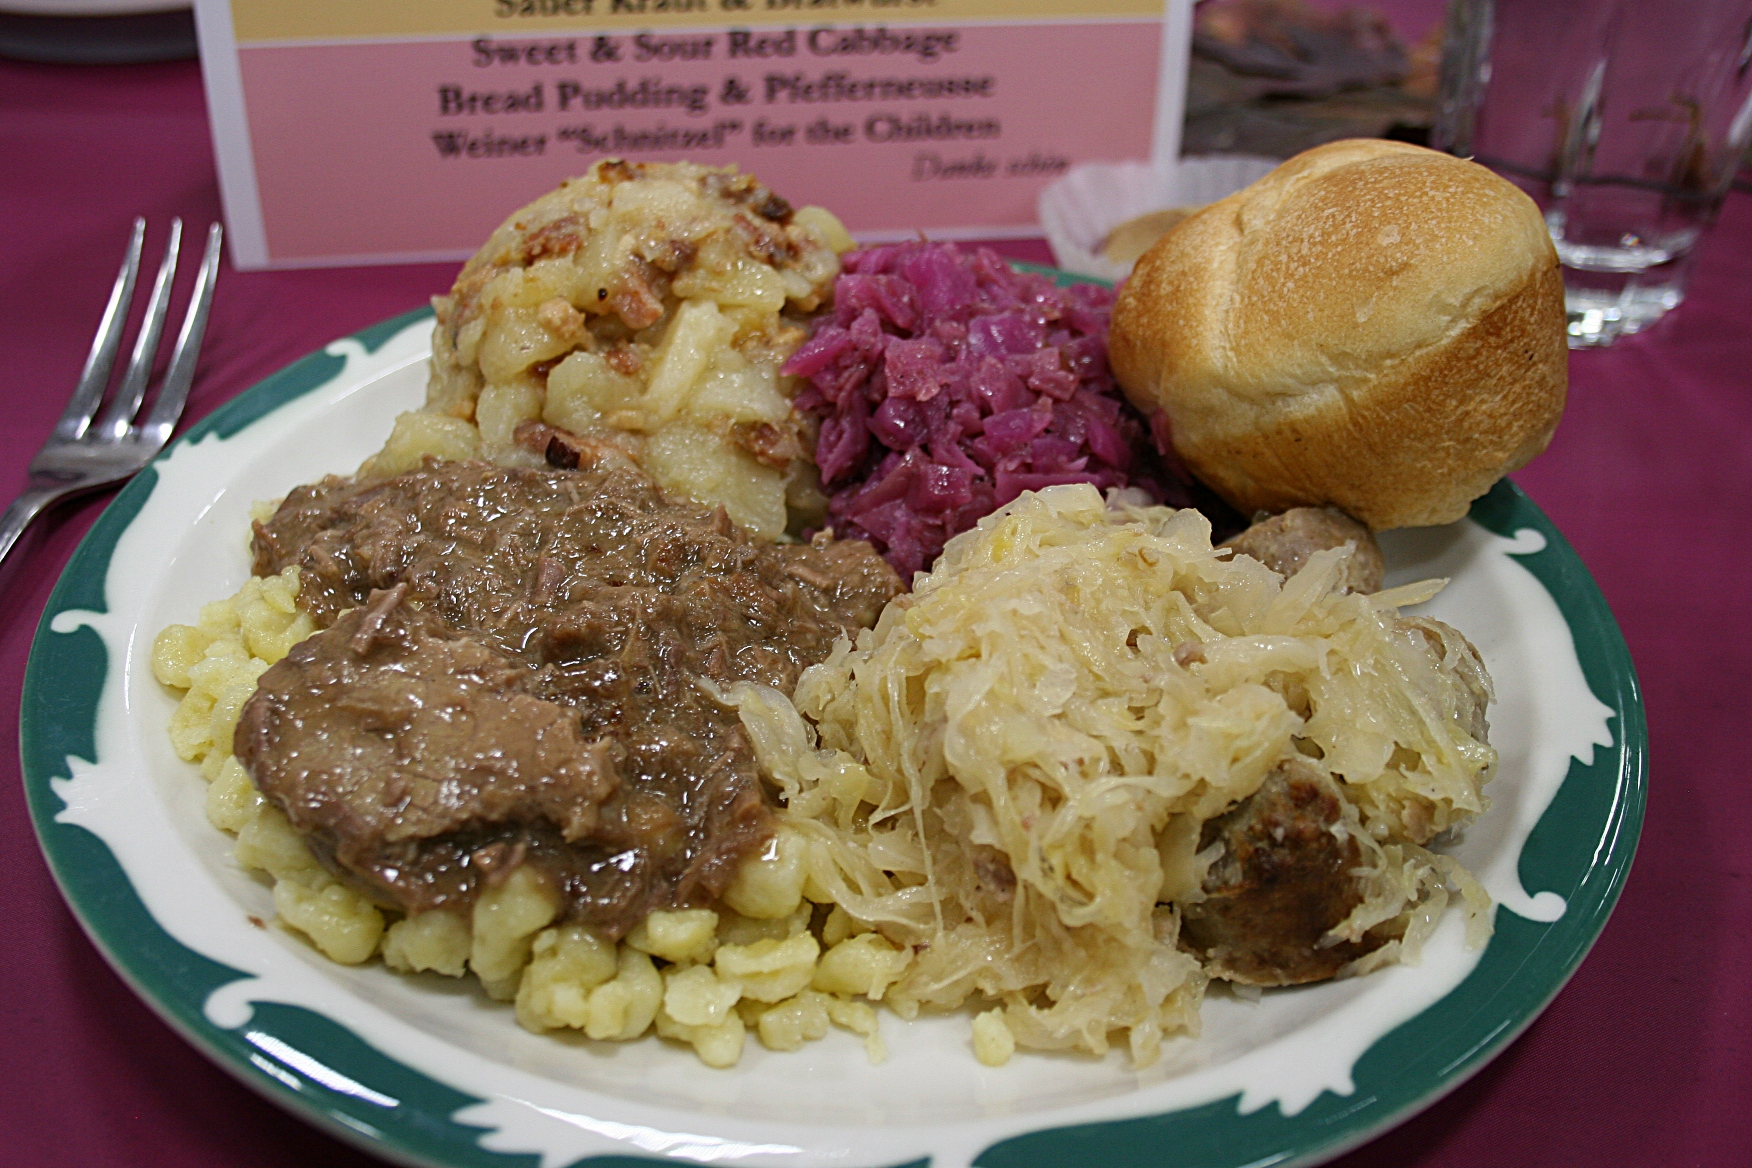 The 2011 CVLHS German meal: sauerbraten and spaetzle on the left